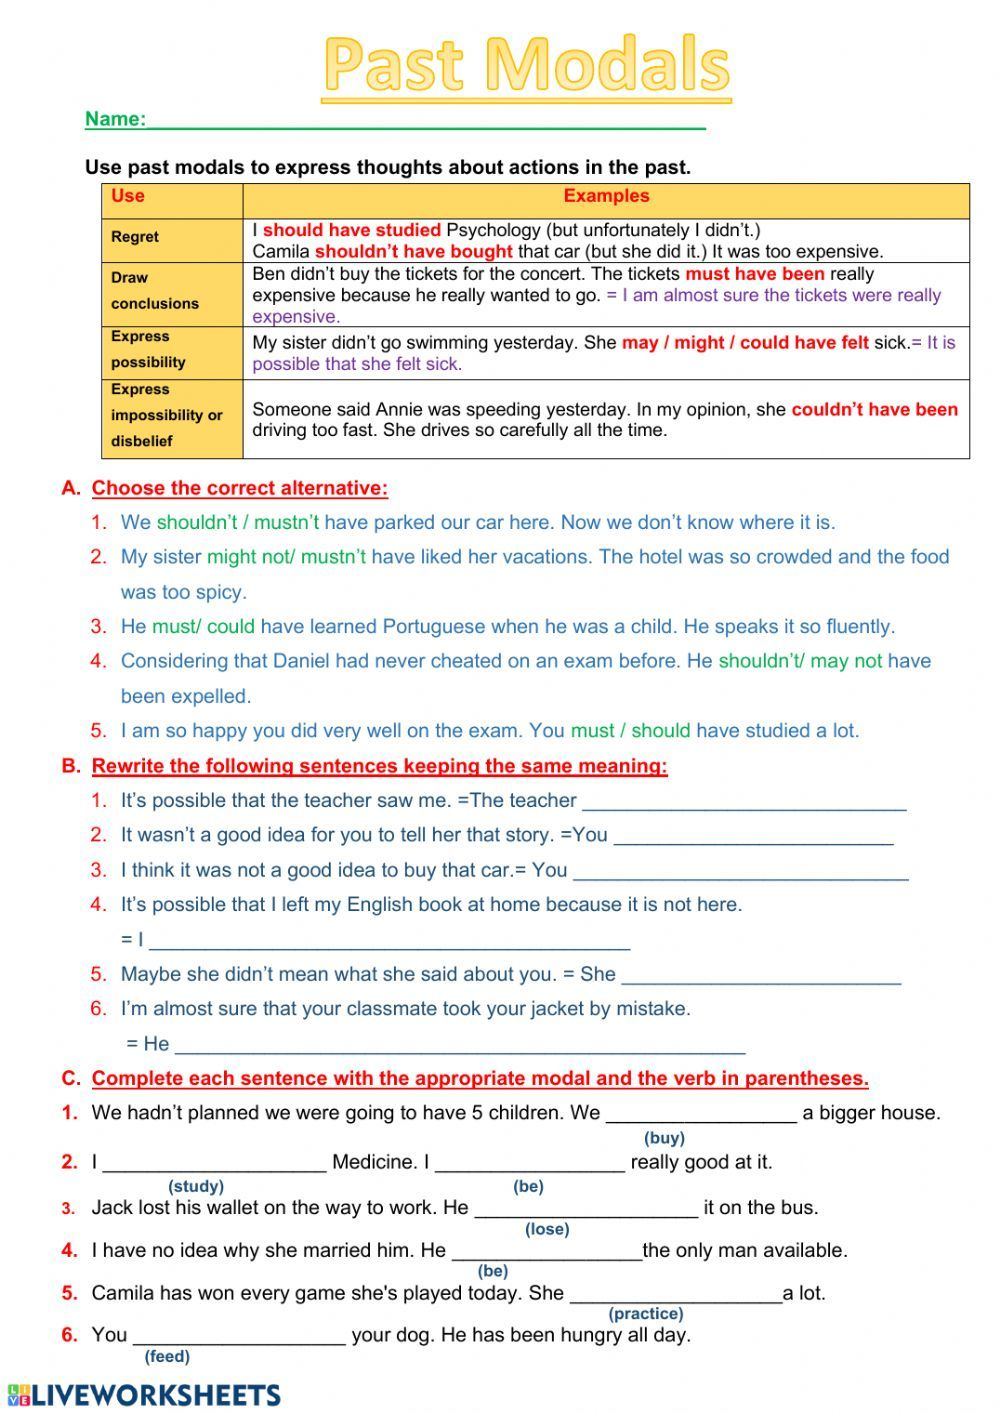 Modal Verbs Online Worksheet You Can Do The Exercises Online Or Download The Worksheet Verb Worksheets English As A Second Language English Teaching Resources